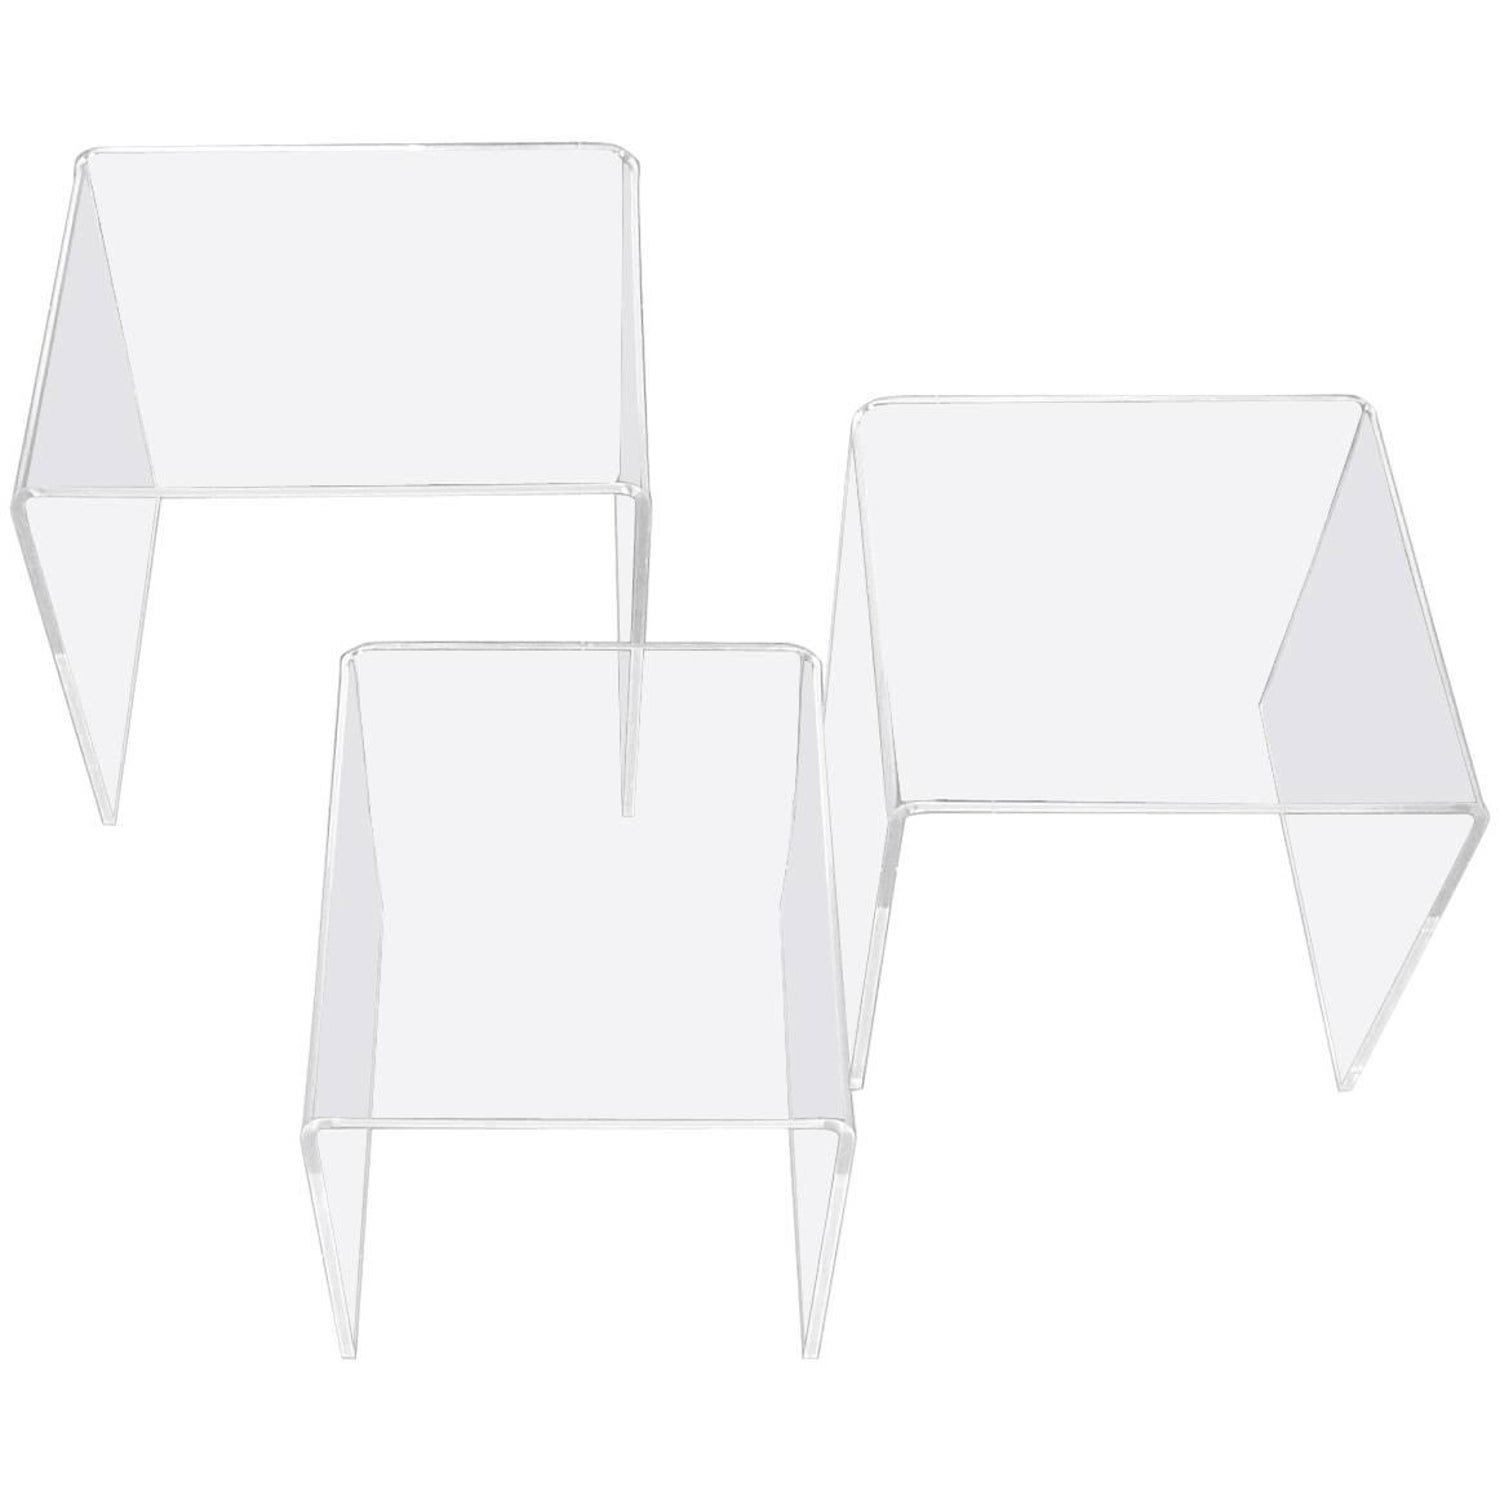 Plastic nesting tables and stacking tables 27 for sale at 1stdibs set of three italian space age lucite acrylic nesting tables clear plastic watchthetrailerfo